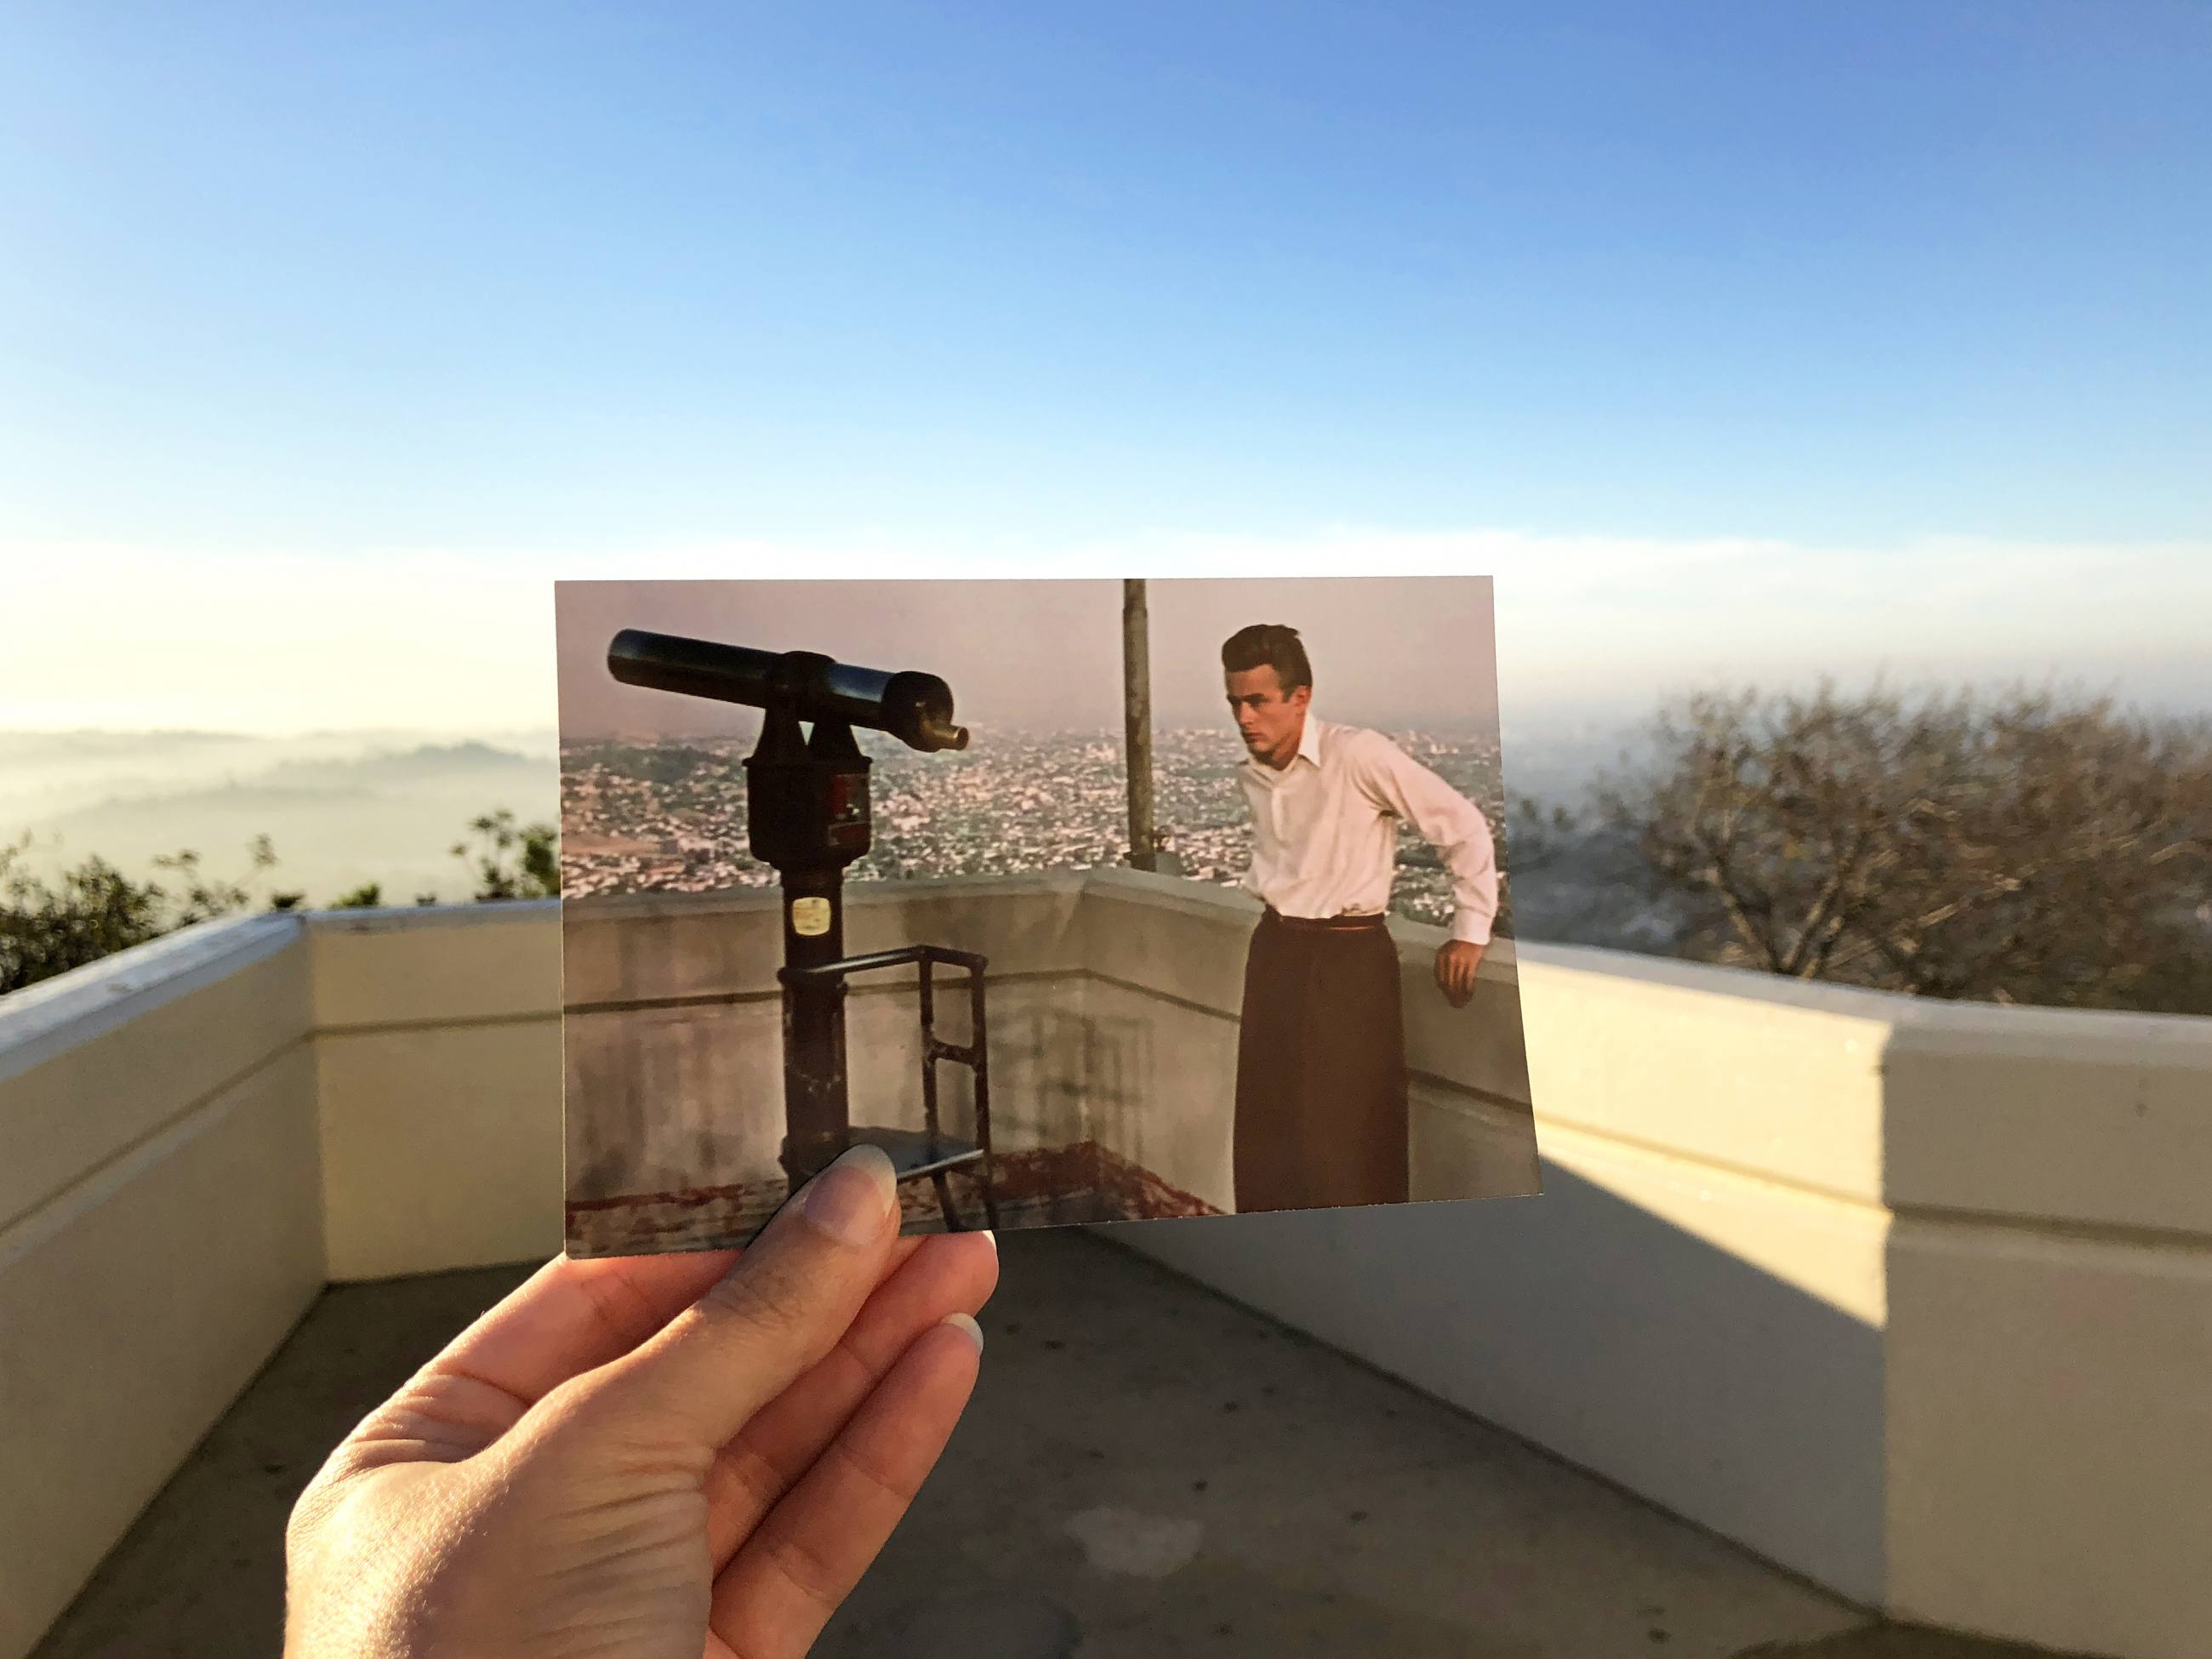 James Dean at the Griffith Observatory in Rebel Without a Cause   |  Photo: @filmtourismus